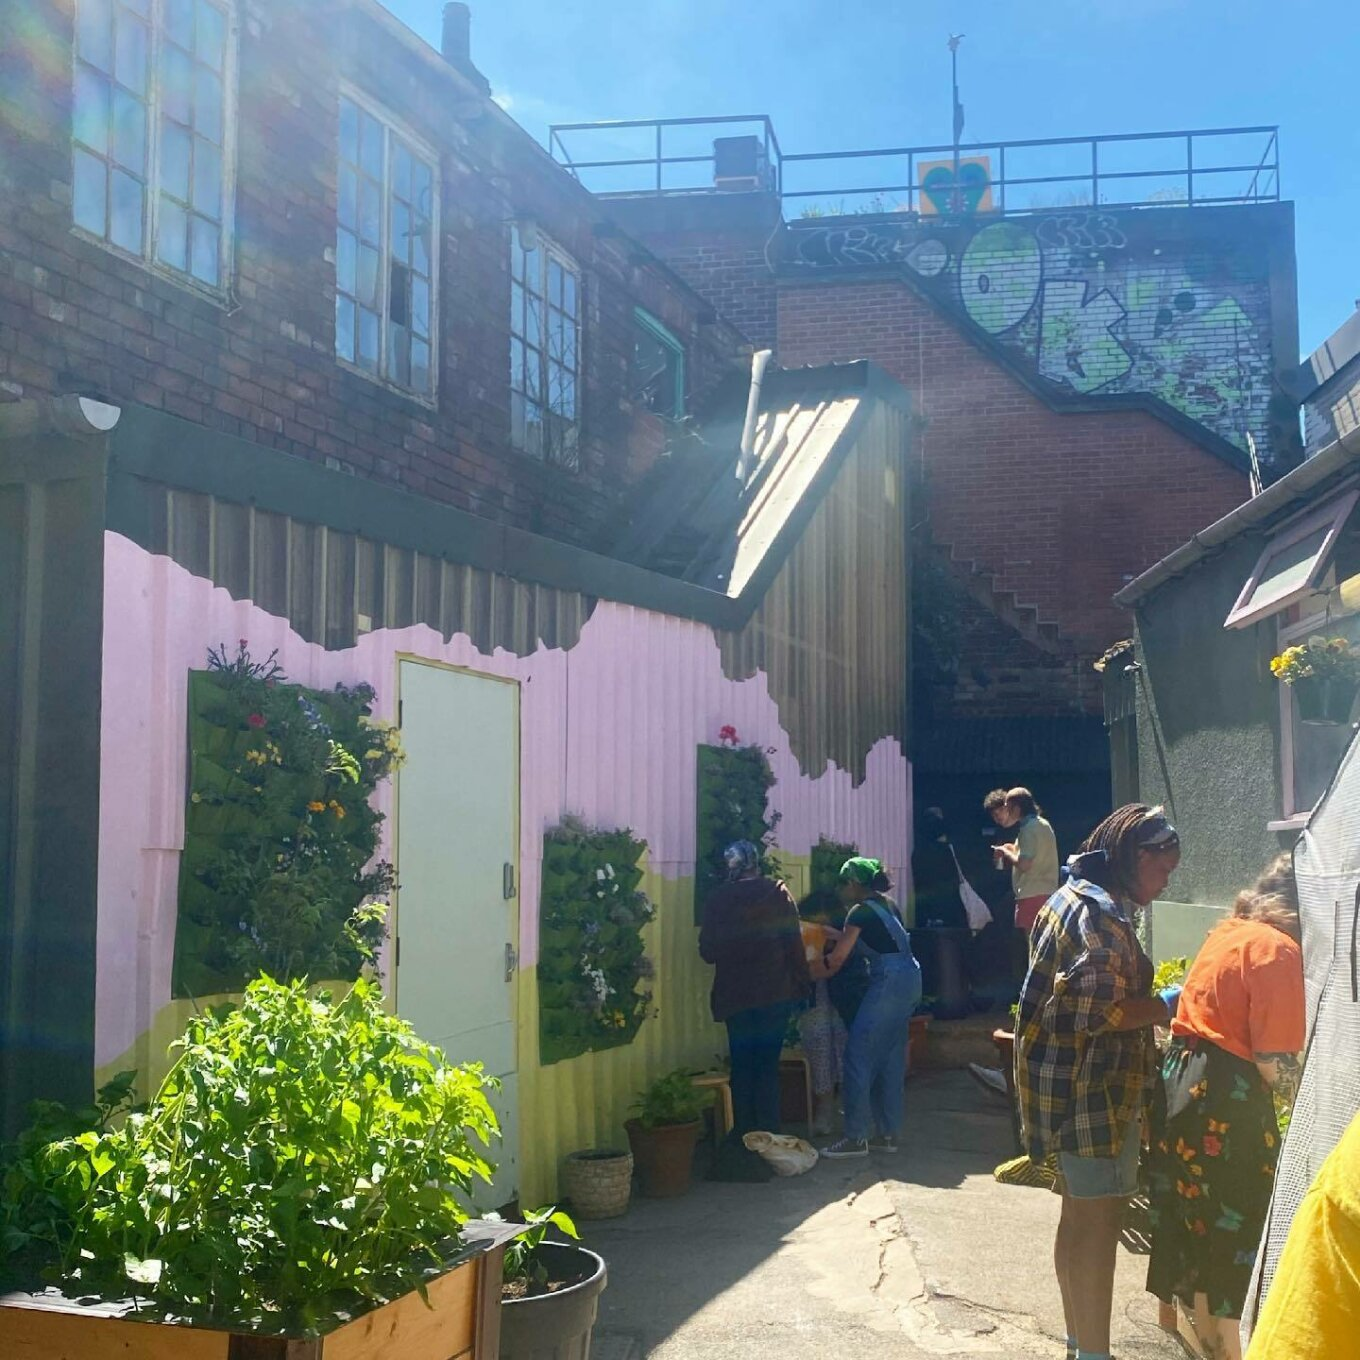 A sunny courtyard with a pink, khaki and chartreuse mural wall from which several planters are hung. To the left, greenery spills out of a wooden raised bed. To the right, an outbuilding is visible, windows open. Several people stand around chatting.